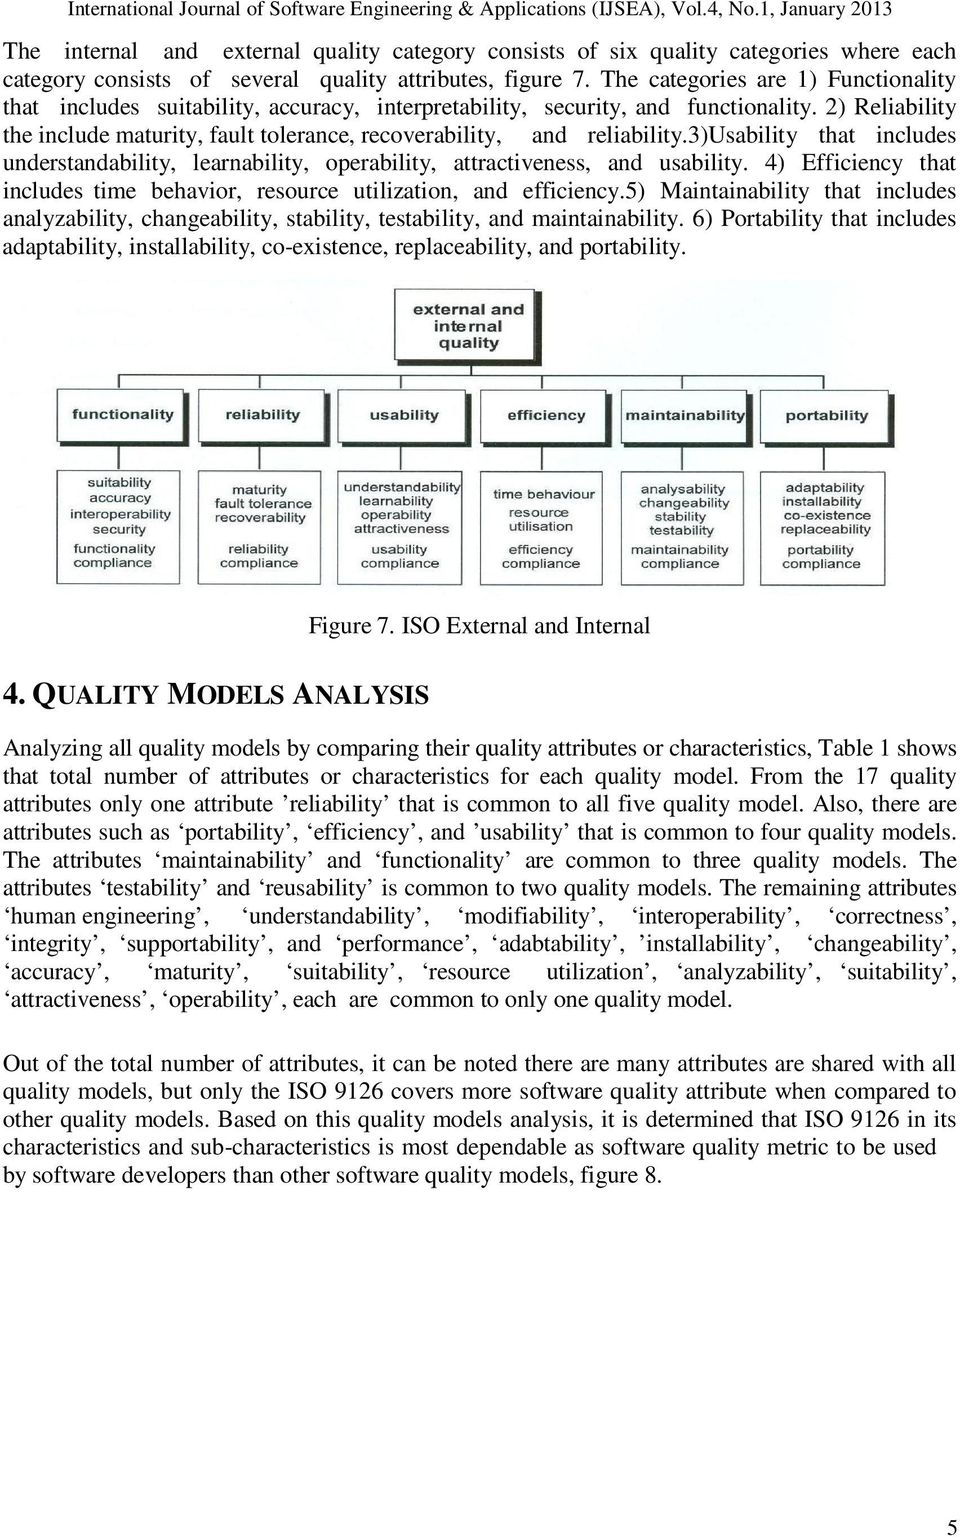 QUALITY MODEL BASED ON COTS QUALITY ATTRIBUTES - PDF